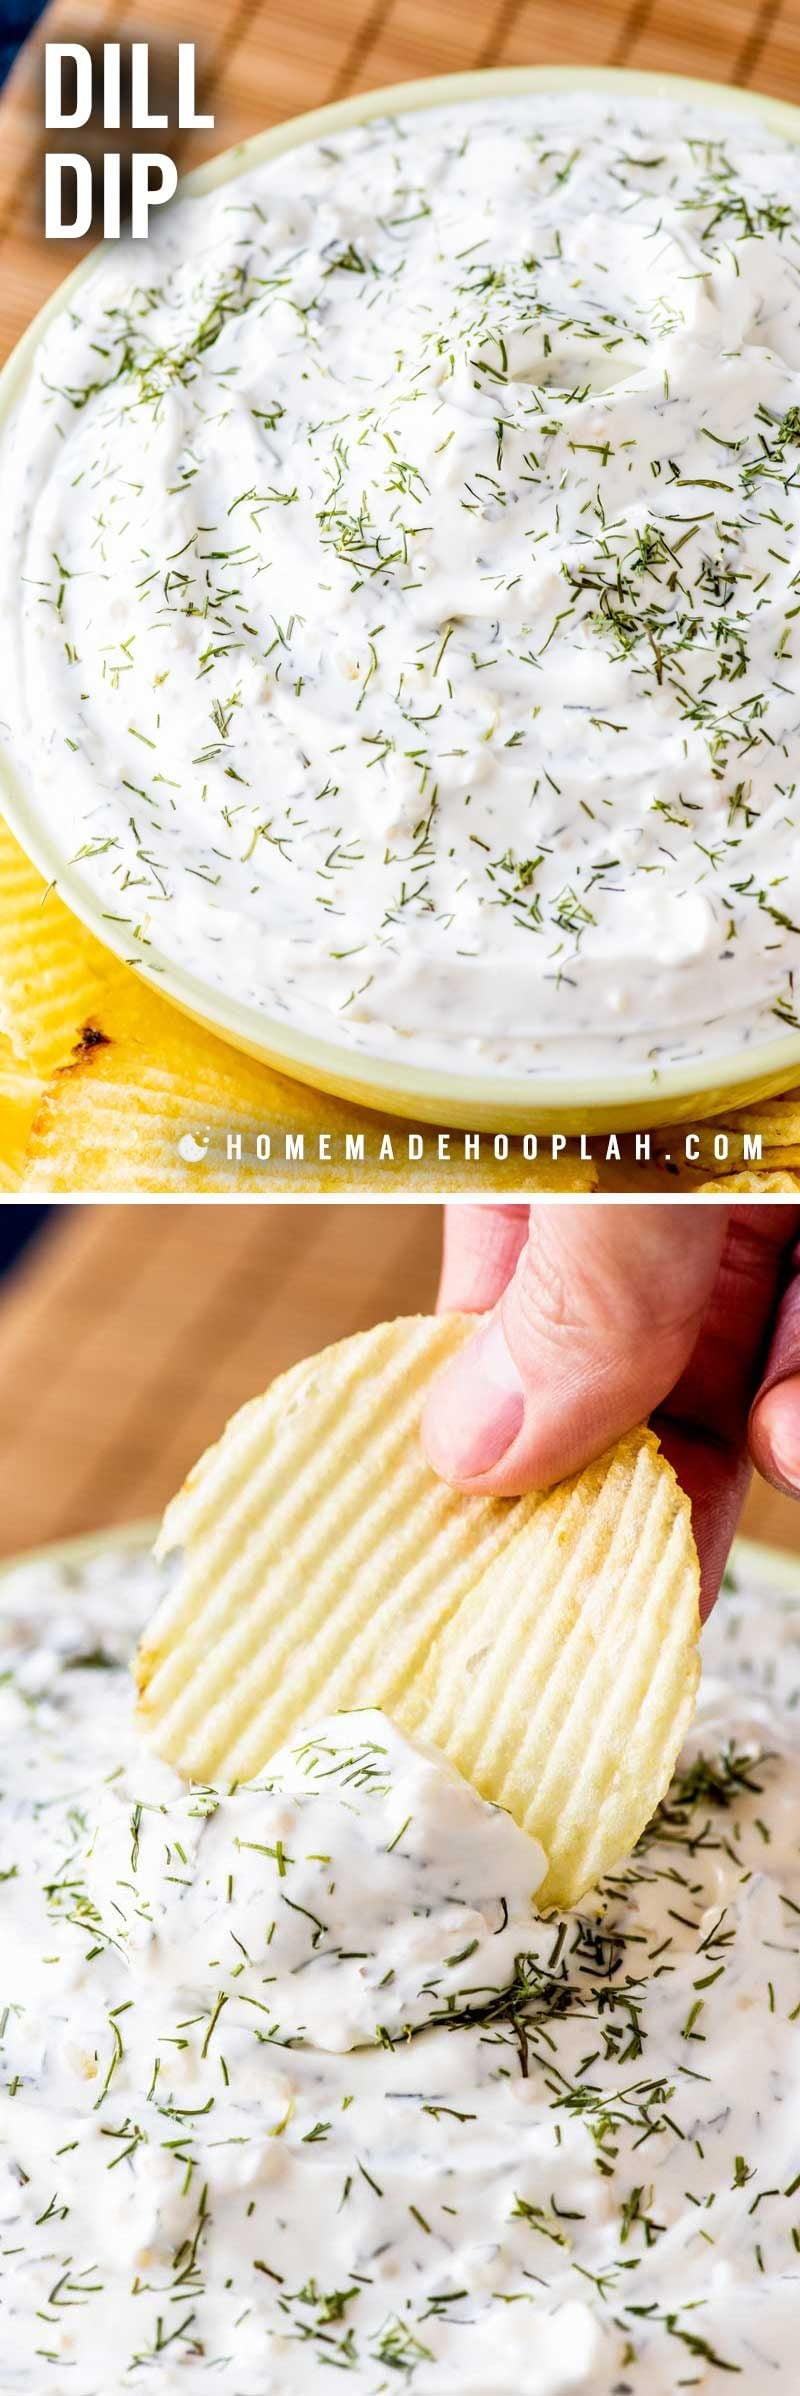 Dill dip recipe for dipping veggies.